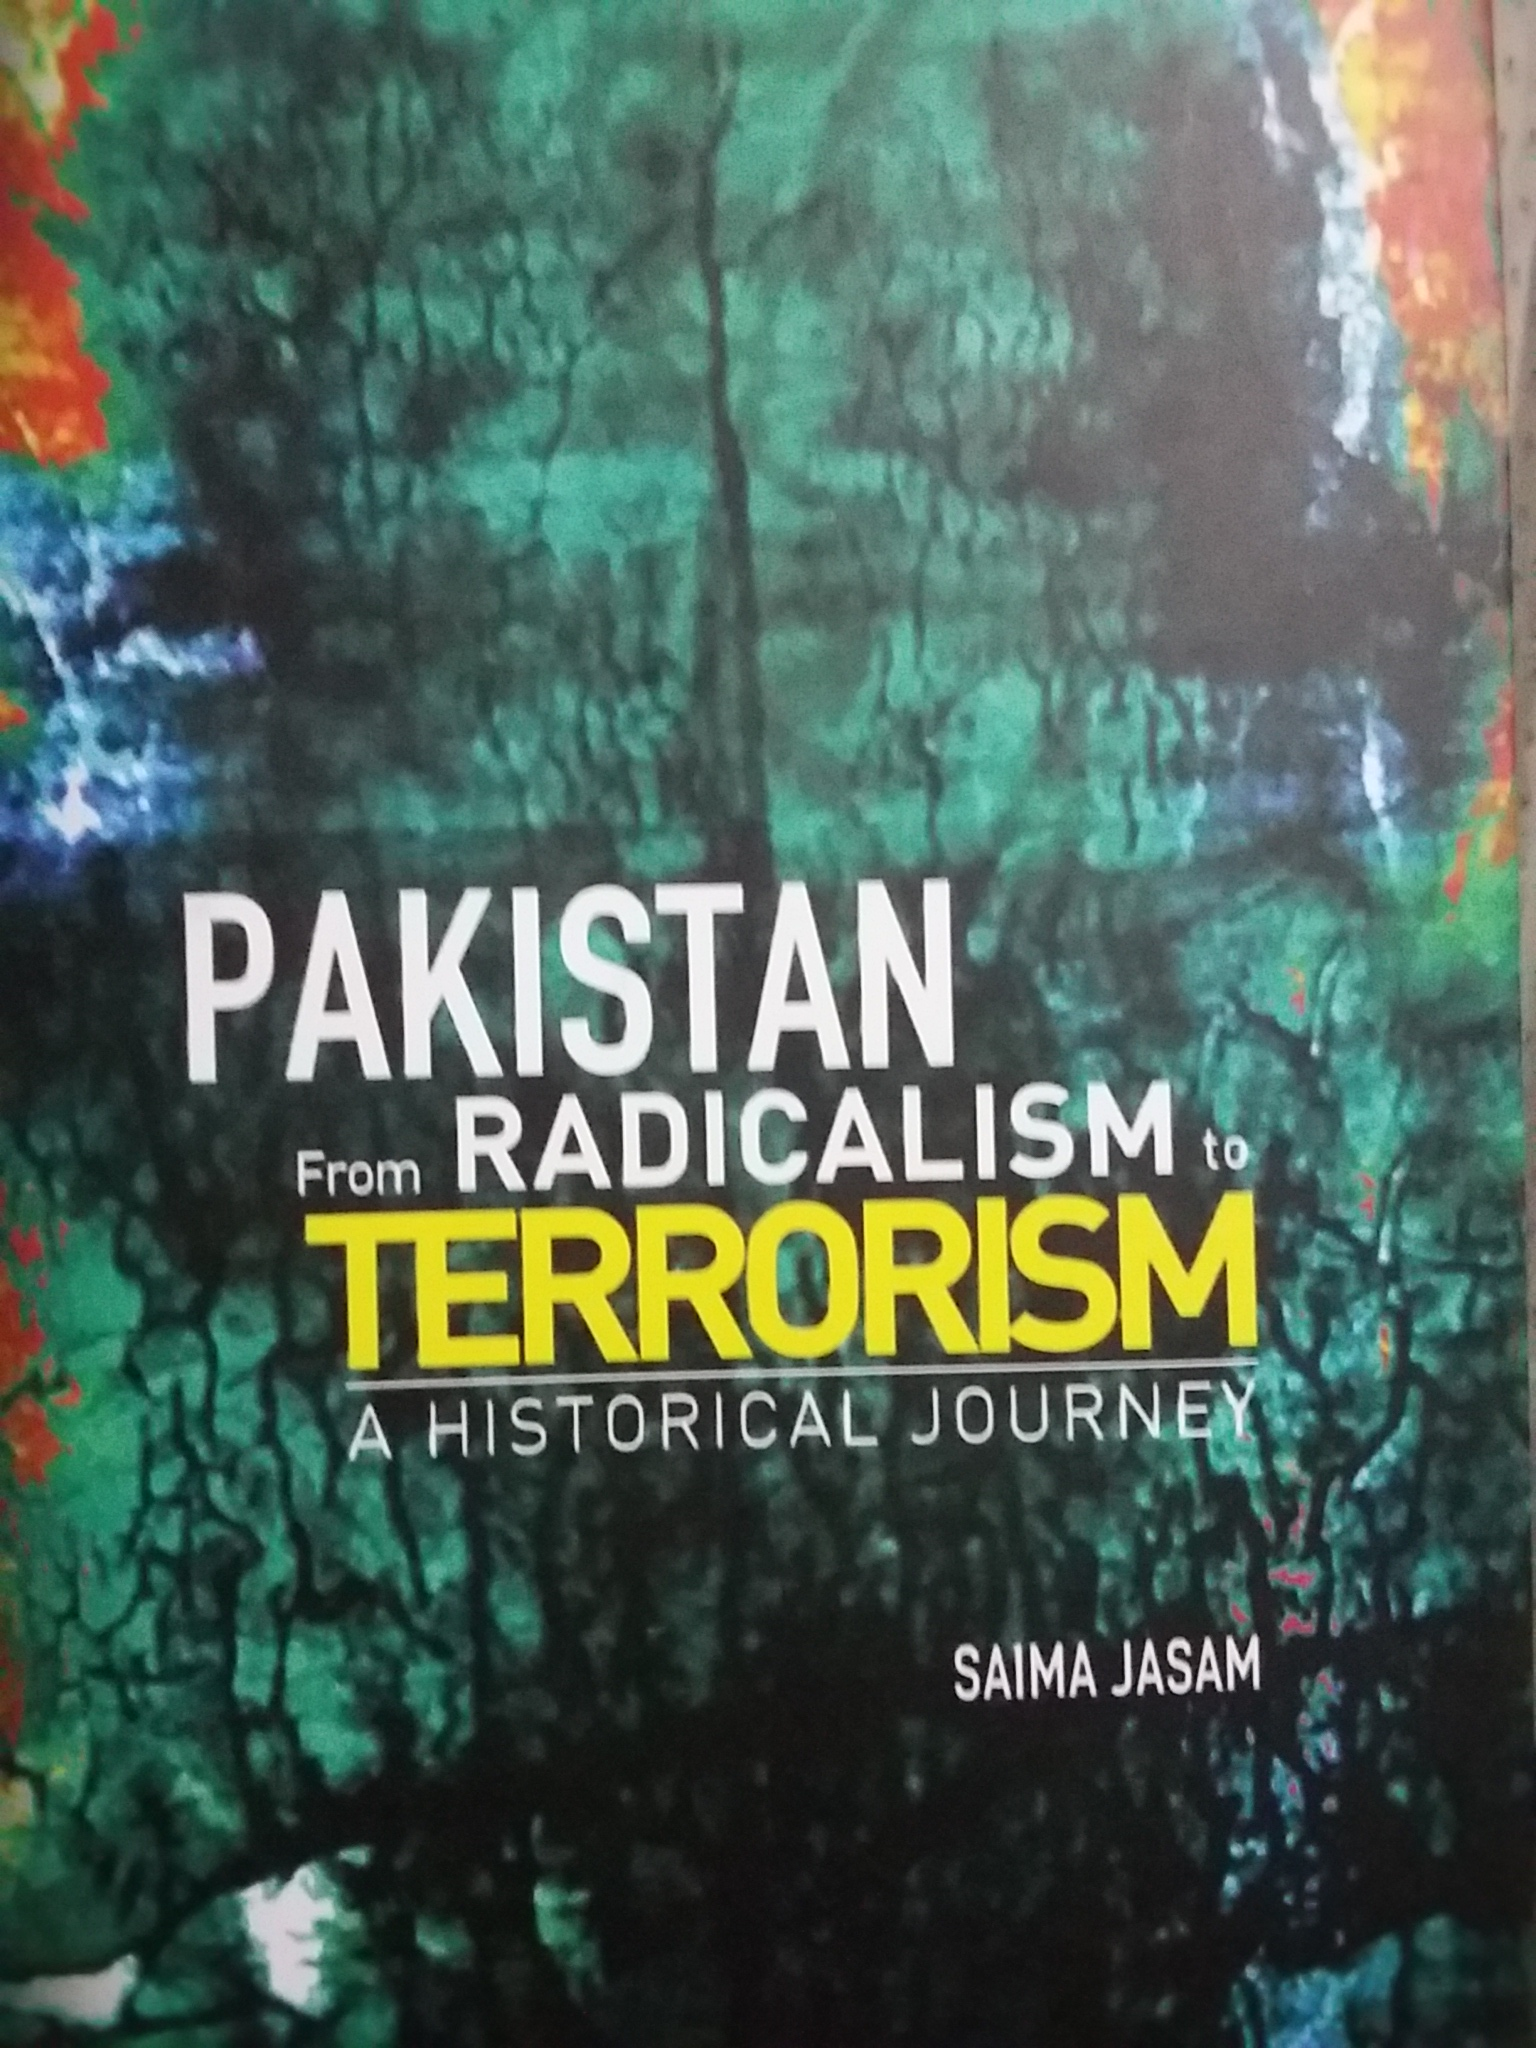 Book gift from School of International Law, Islamabad